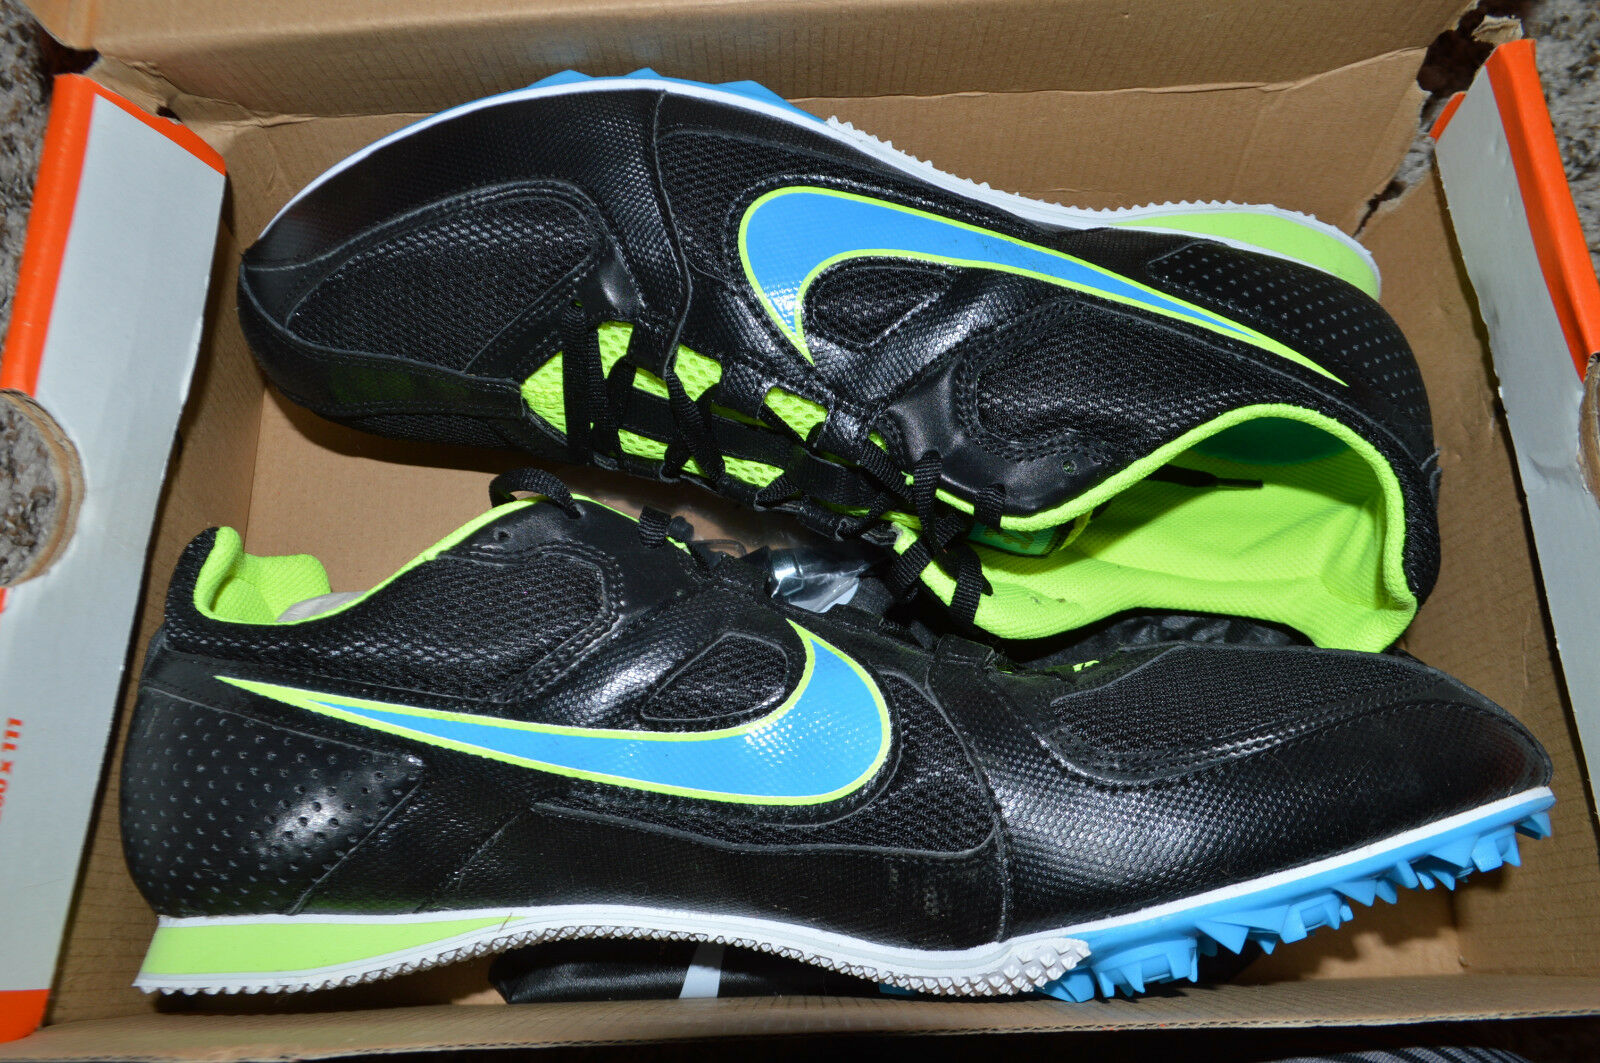 New Nike Mens Zoom Rival MD 6 Track Spike Shoes 468648-041 sz 12.5